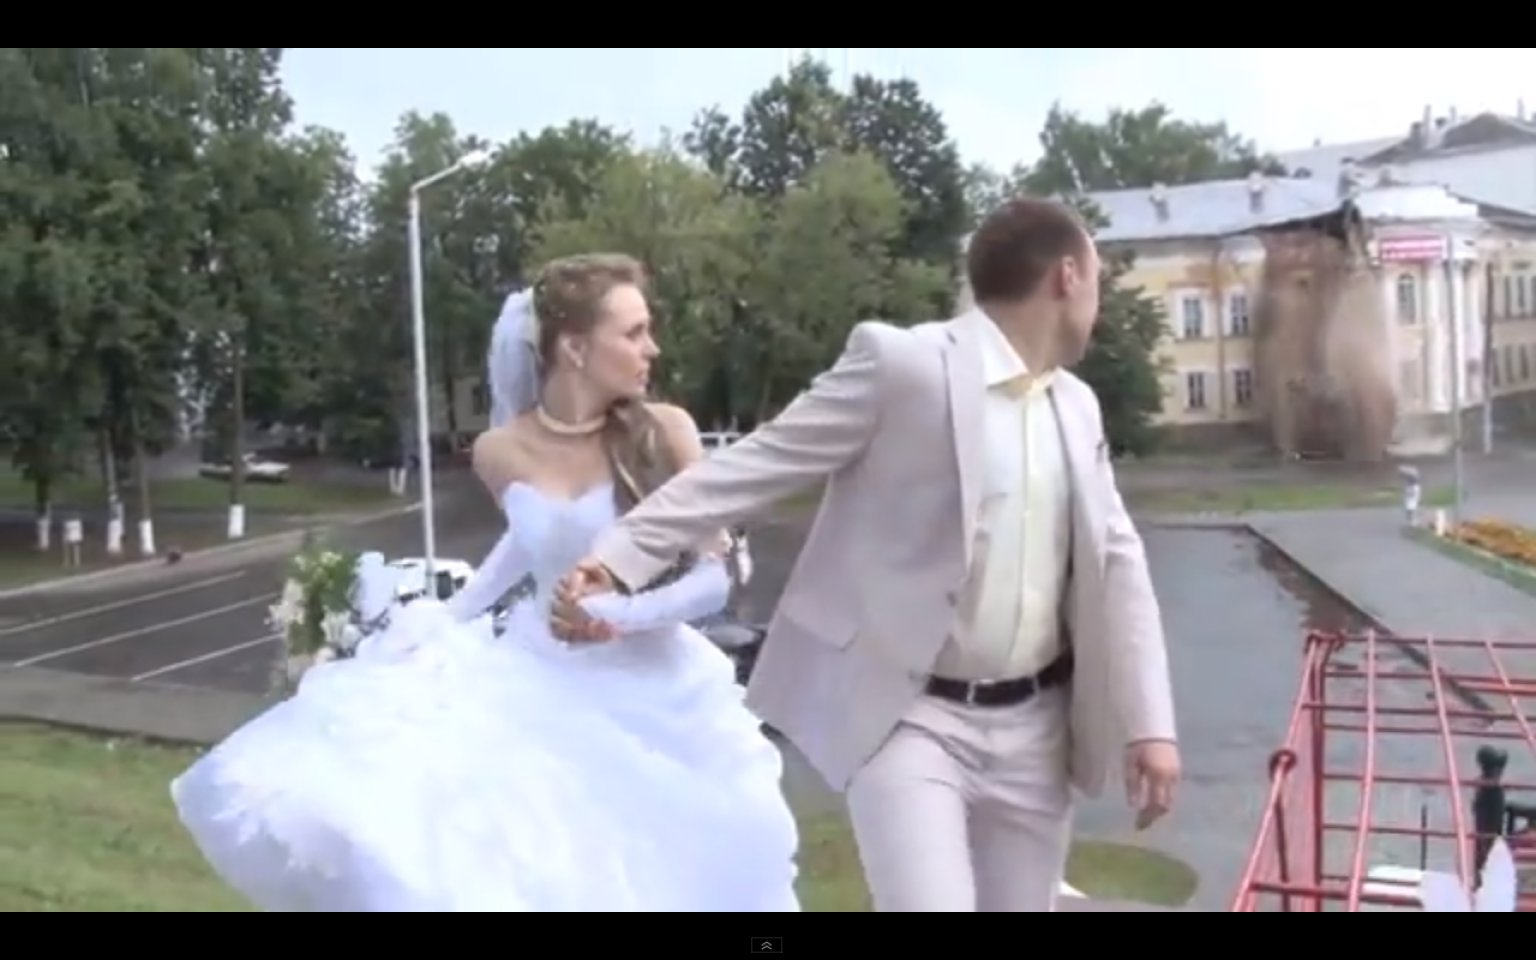 Russian Wedding Building Collaps Video Bad Omen